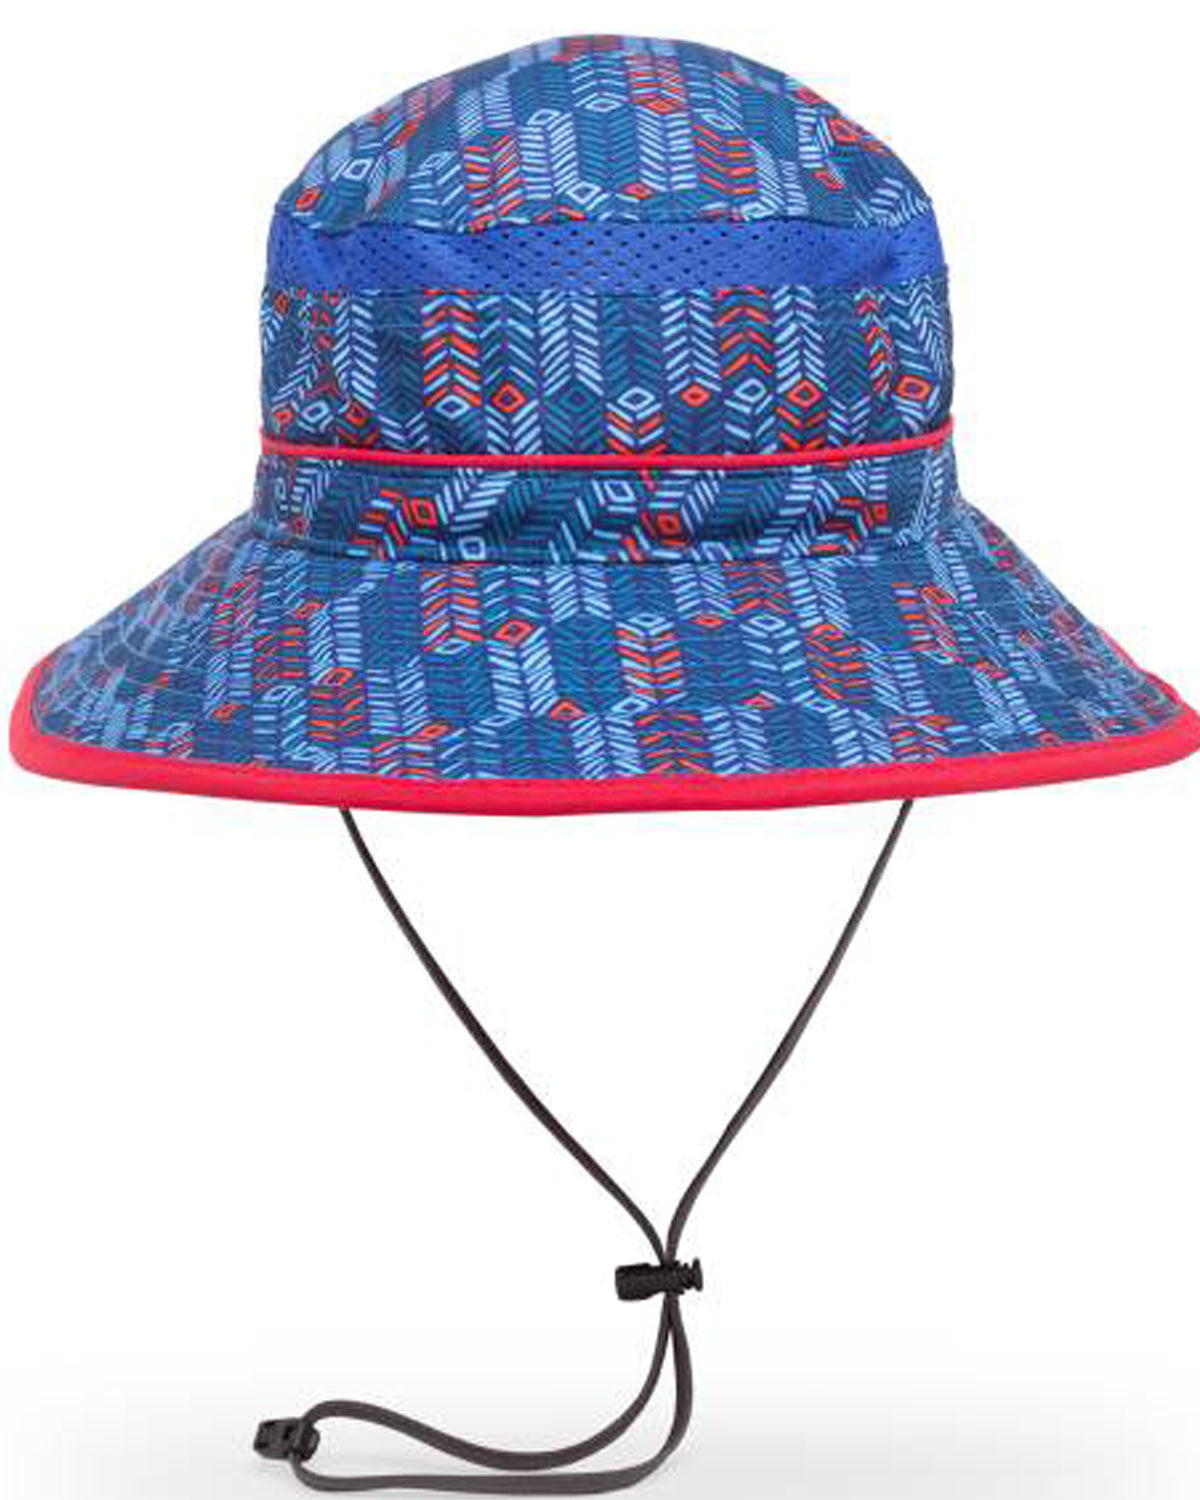 Kids Fun Bucket Hat - Blue Arrow